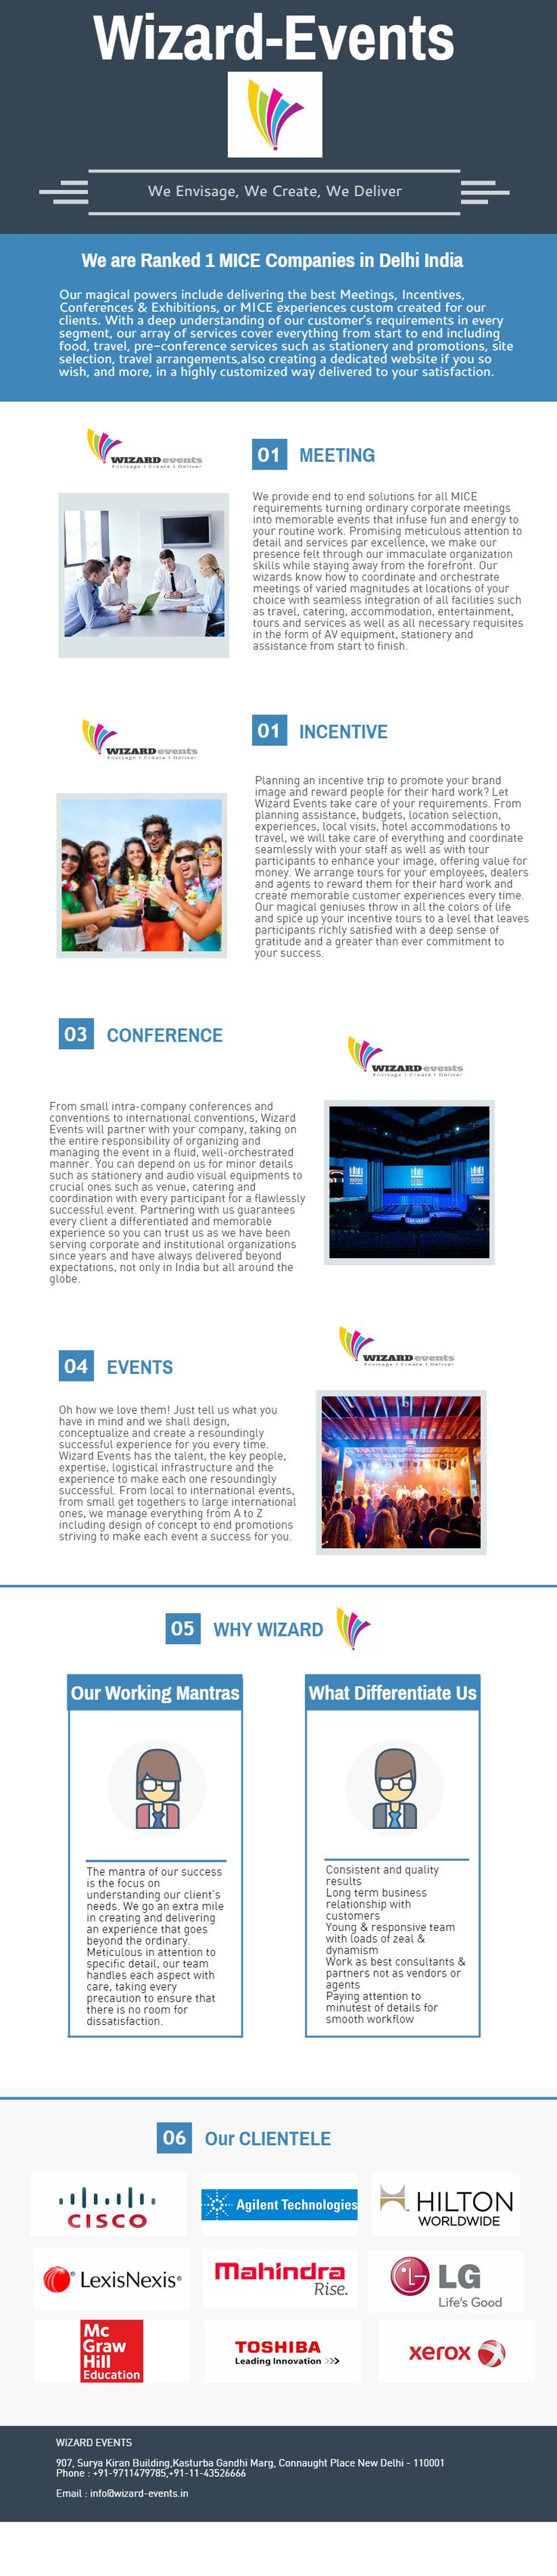 Wizard-Events.in is India's leading and top rated MICE Companies in Delhi. They are pioneer in MICE companies in Delhi which organize business trips, and corporate conferences over all the world.